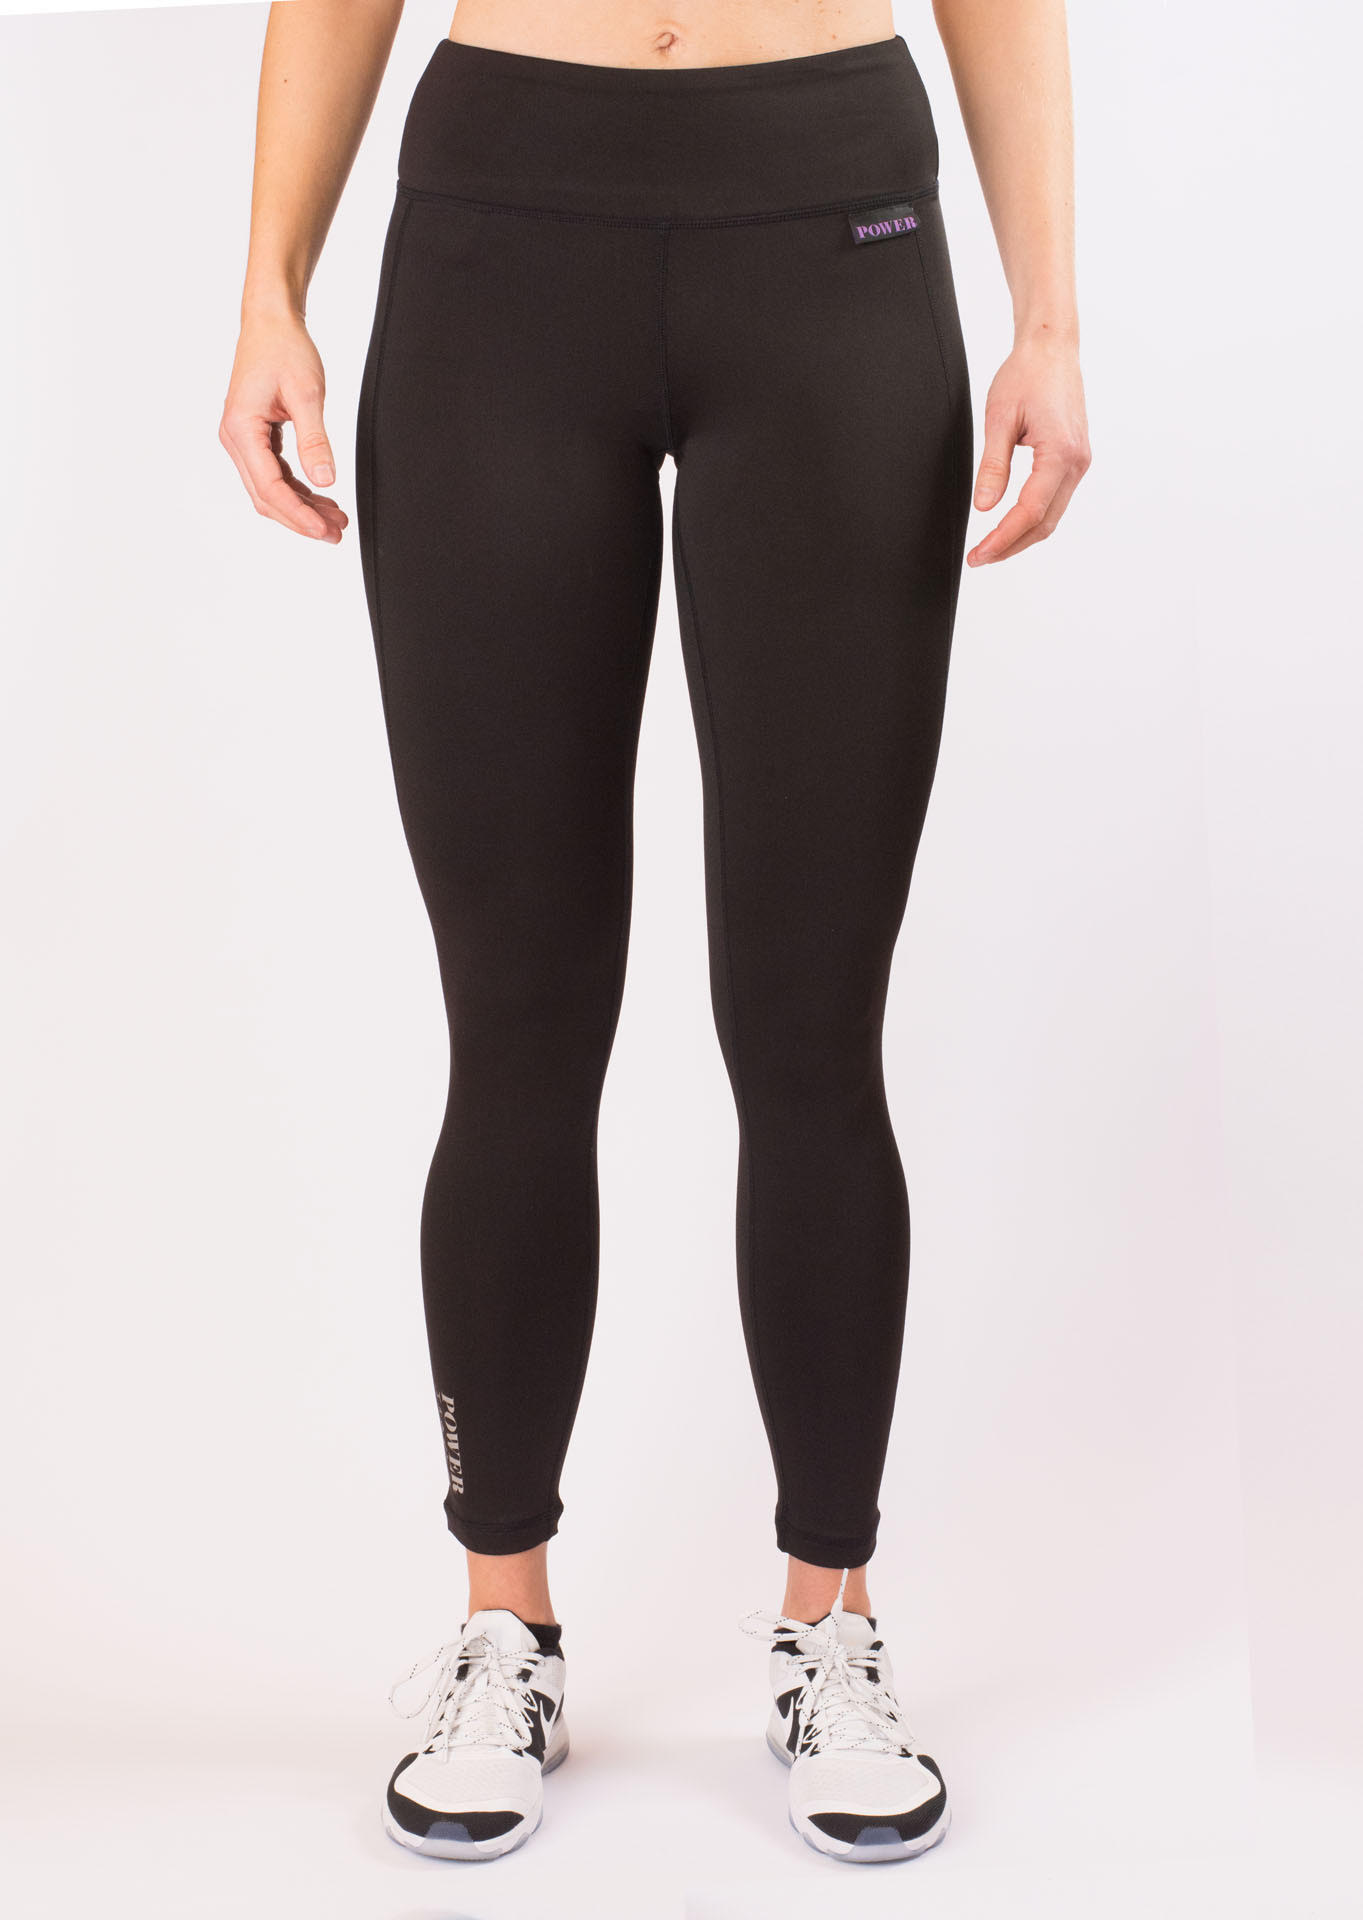 PoS187703-9999_Blsck_POWER of Sweden Compression Leggings framsida